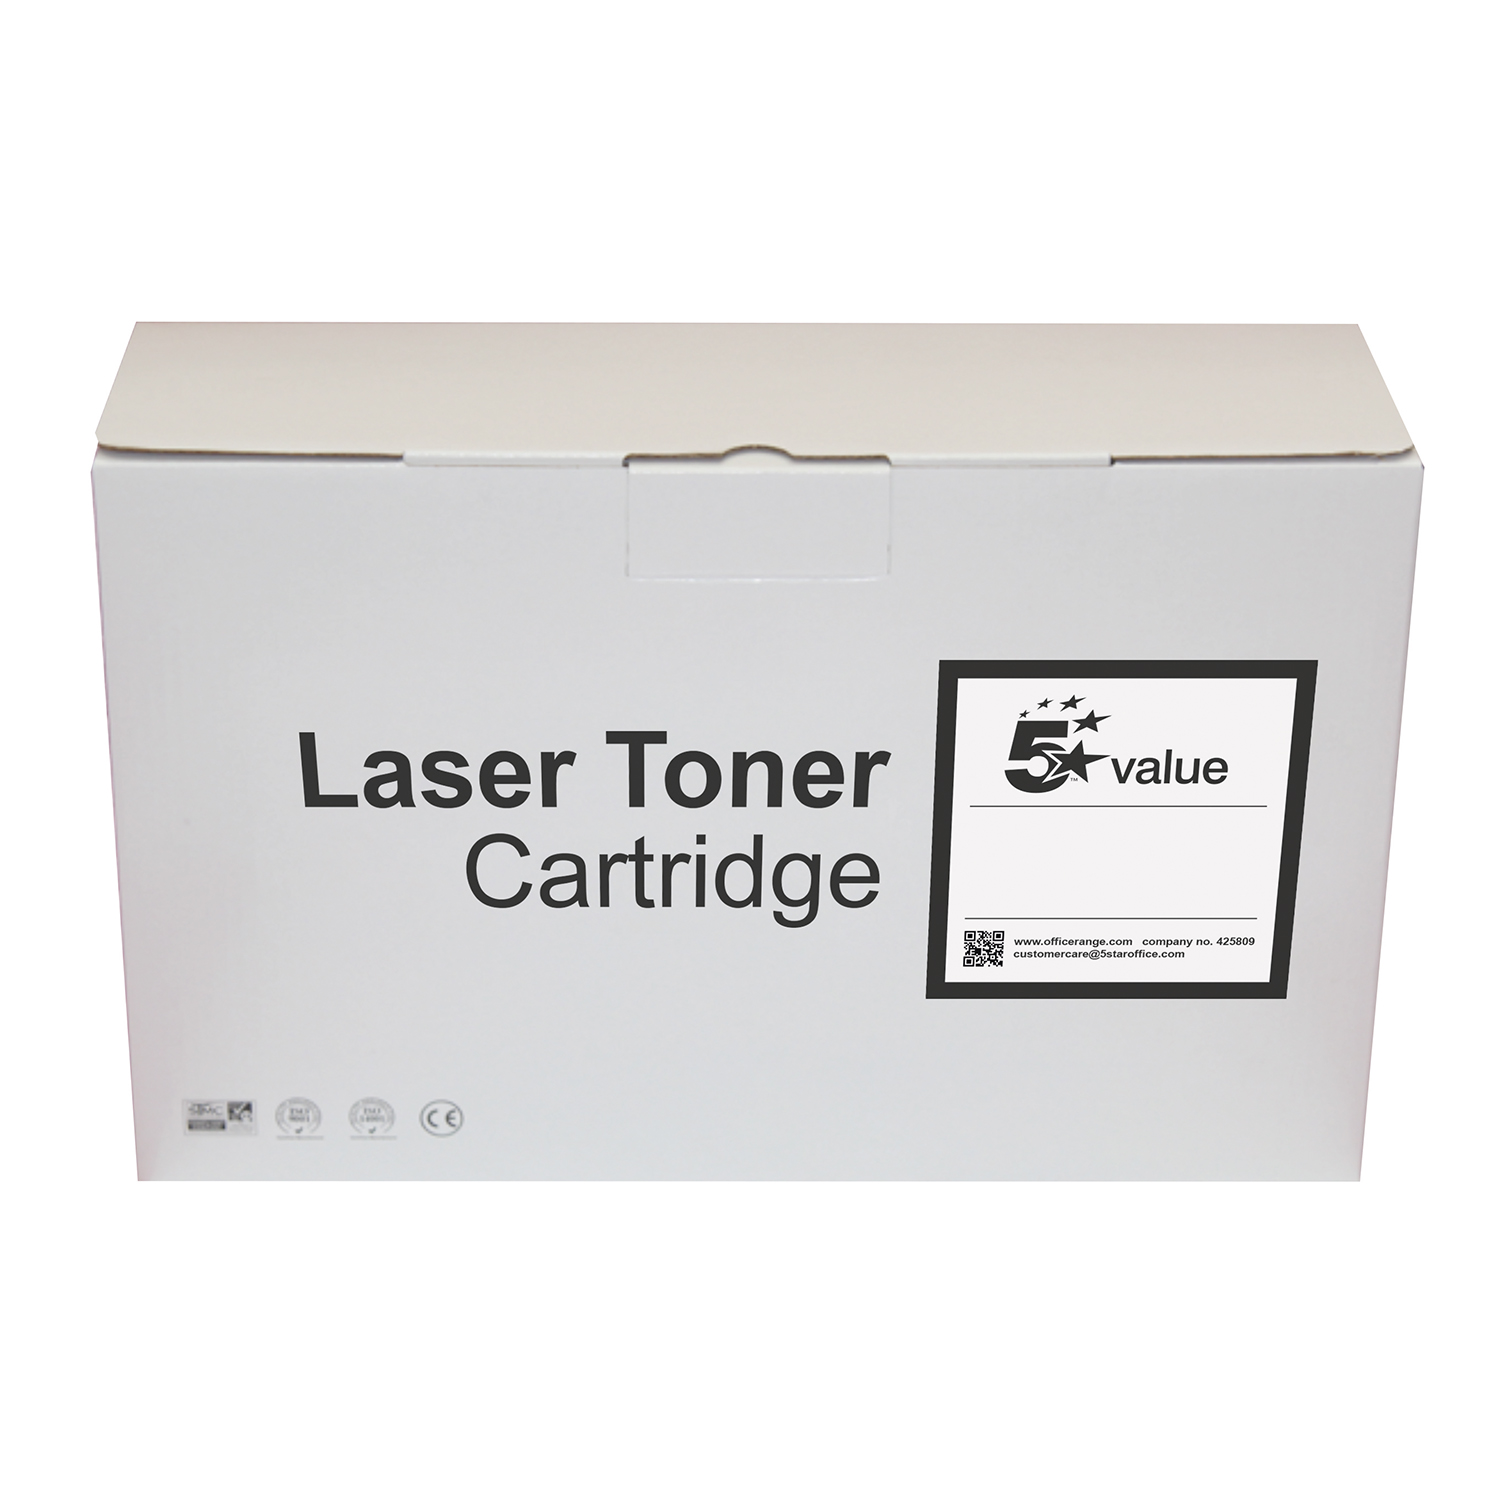 5 Star Value Remanufactured Laser Toner Cartridge 6000pp Magenta [HP No. 507A CE403A Alternative]